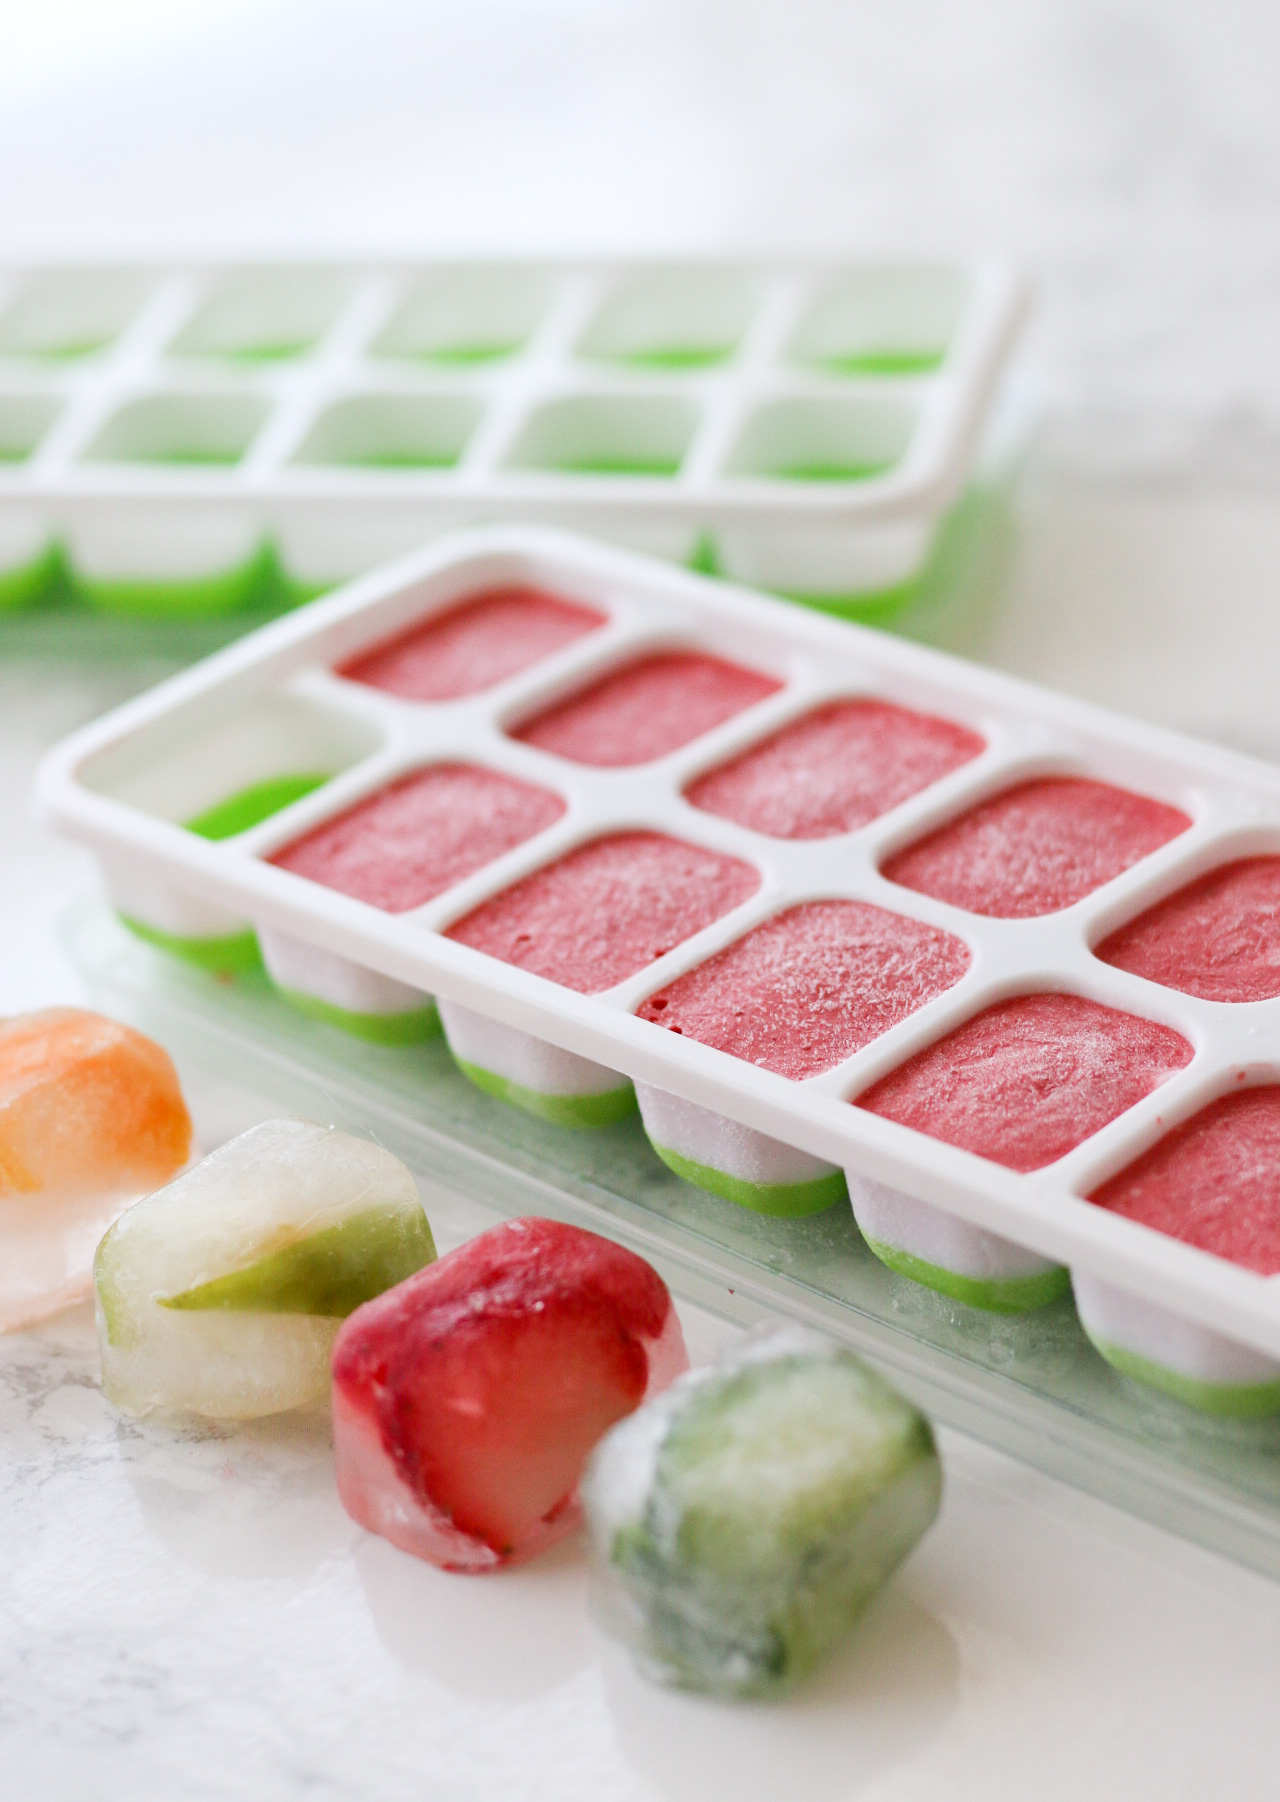 10+ CREATIVE USES FOR ICE CUBE TRAYS